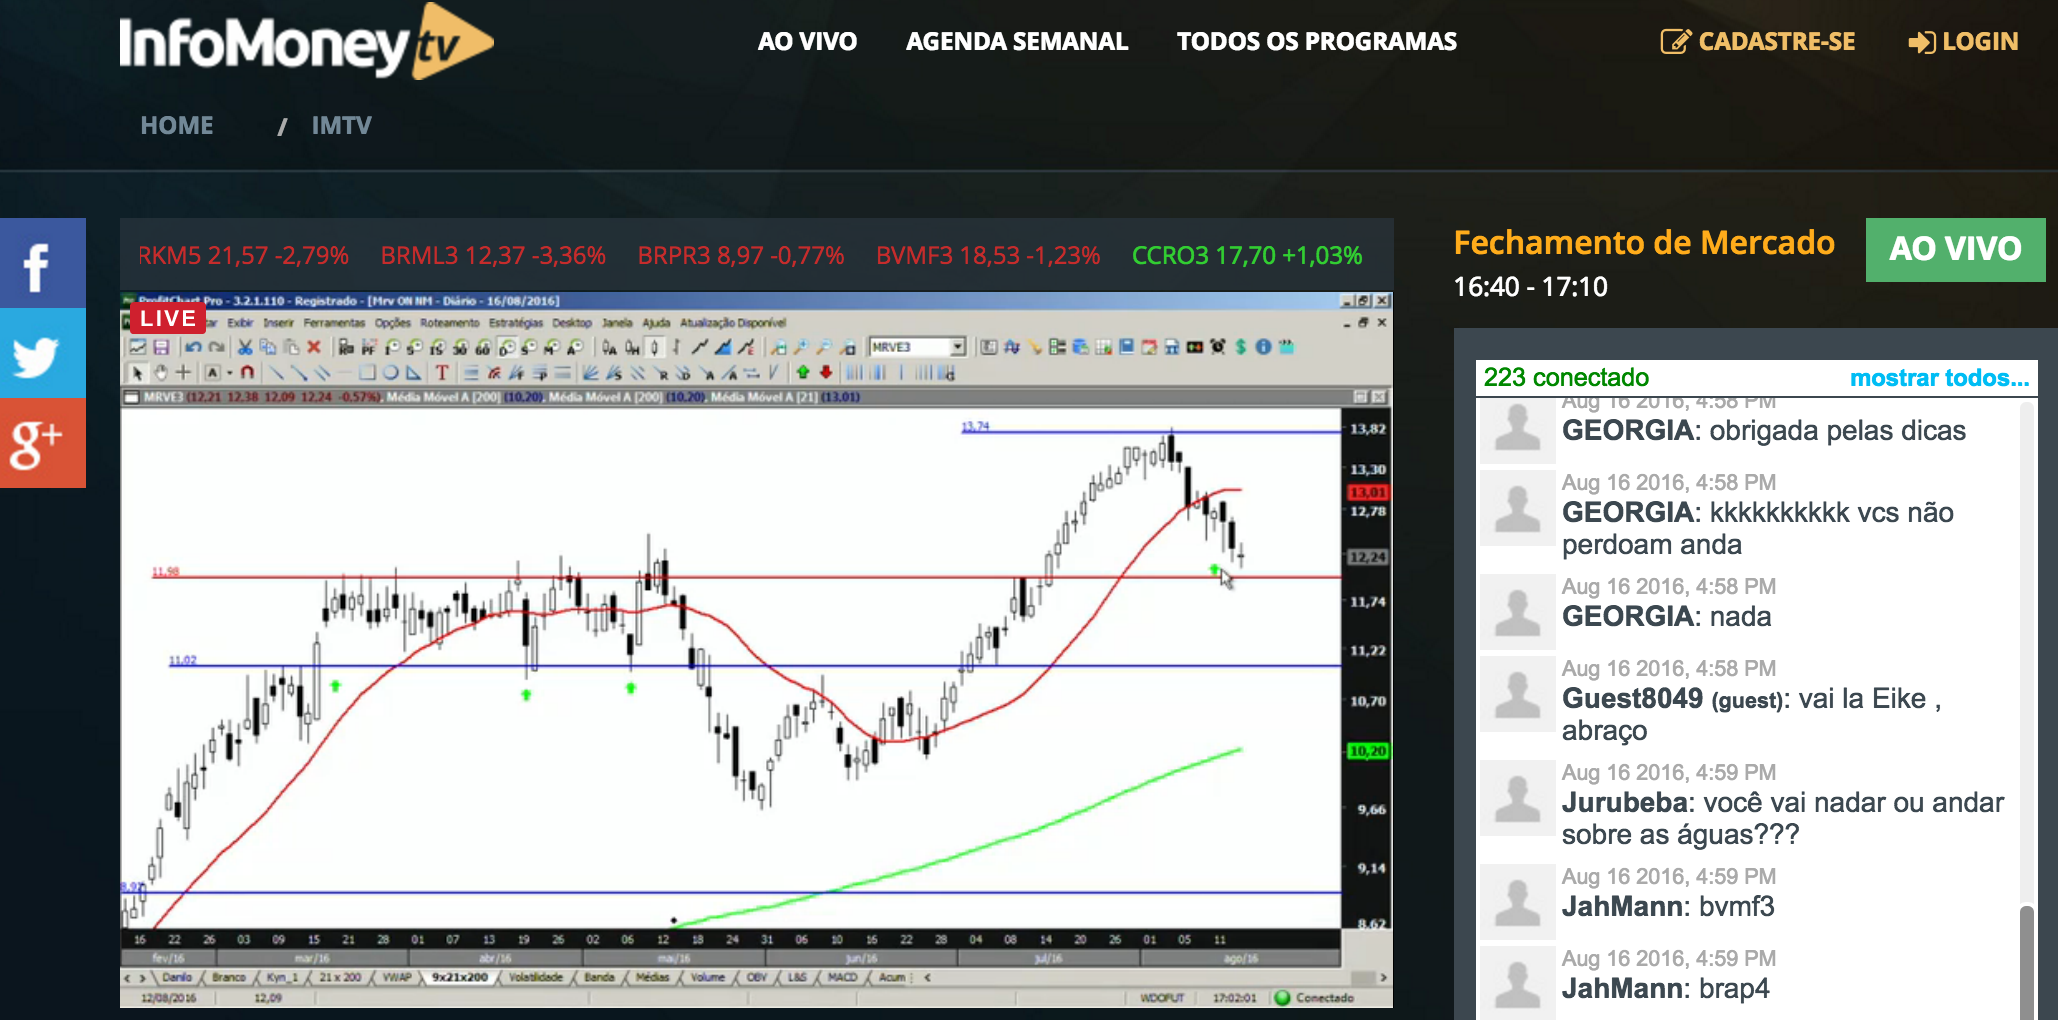 day trade ao vivo imtv